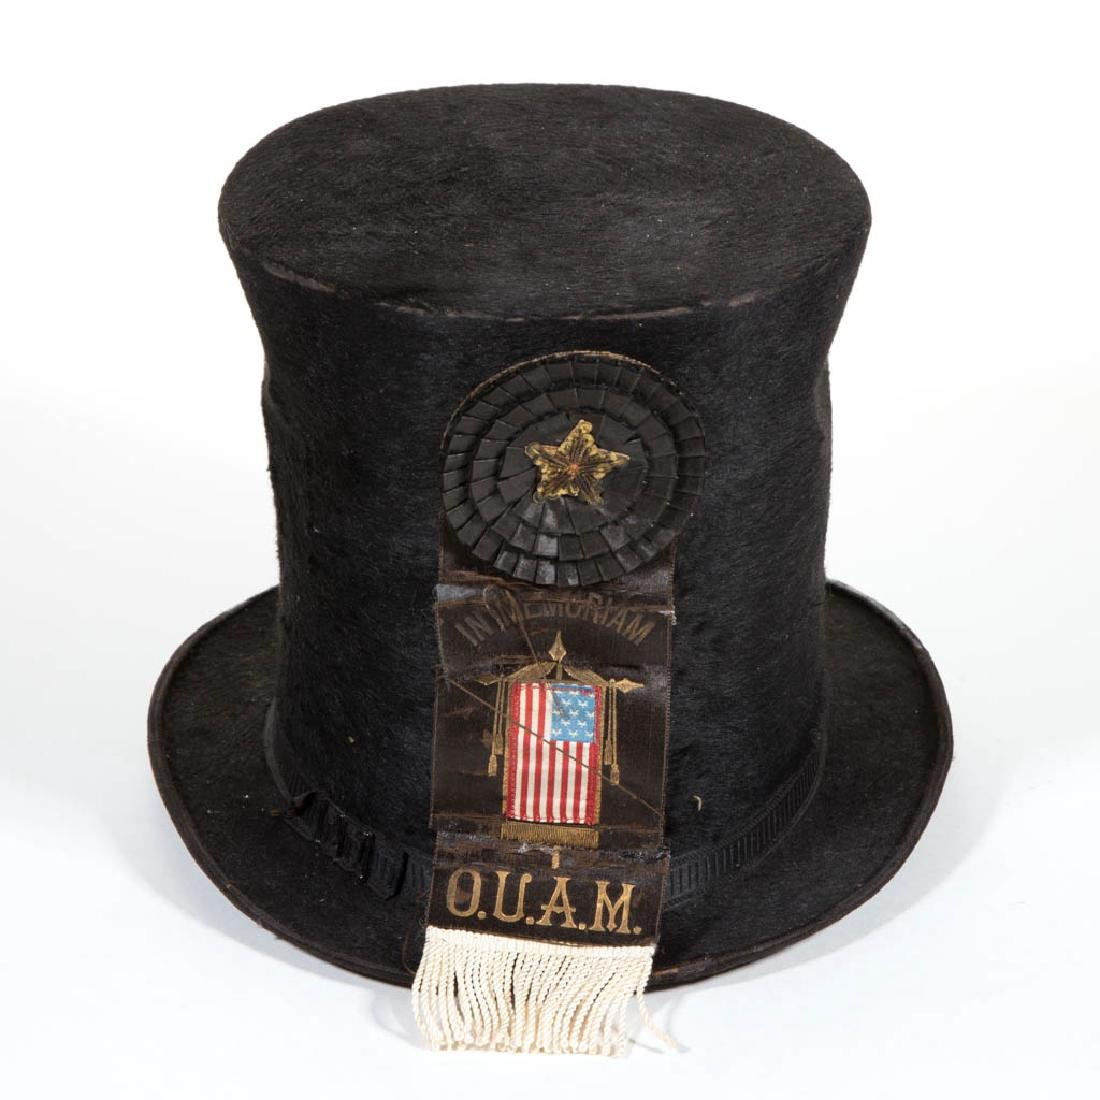 868c774c591d1d FRATERNAL ORDER MOURNING COCKADE / RIBBON AND TOP HAT - Nov 10, 2017 |  Jeffrey S. Evans & Associates in VA